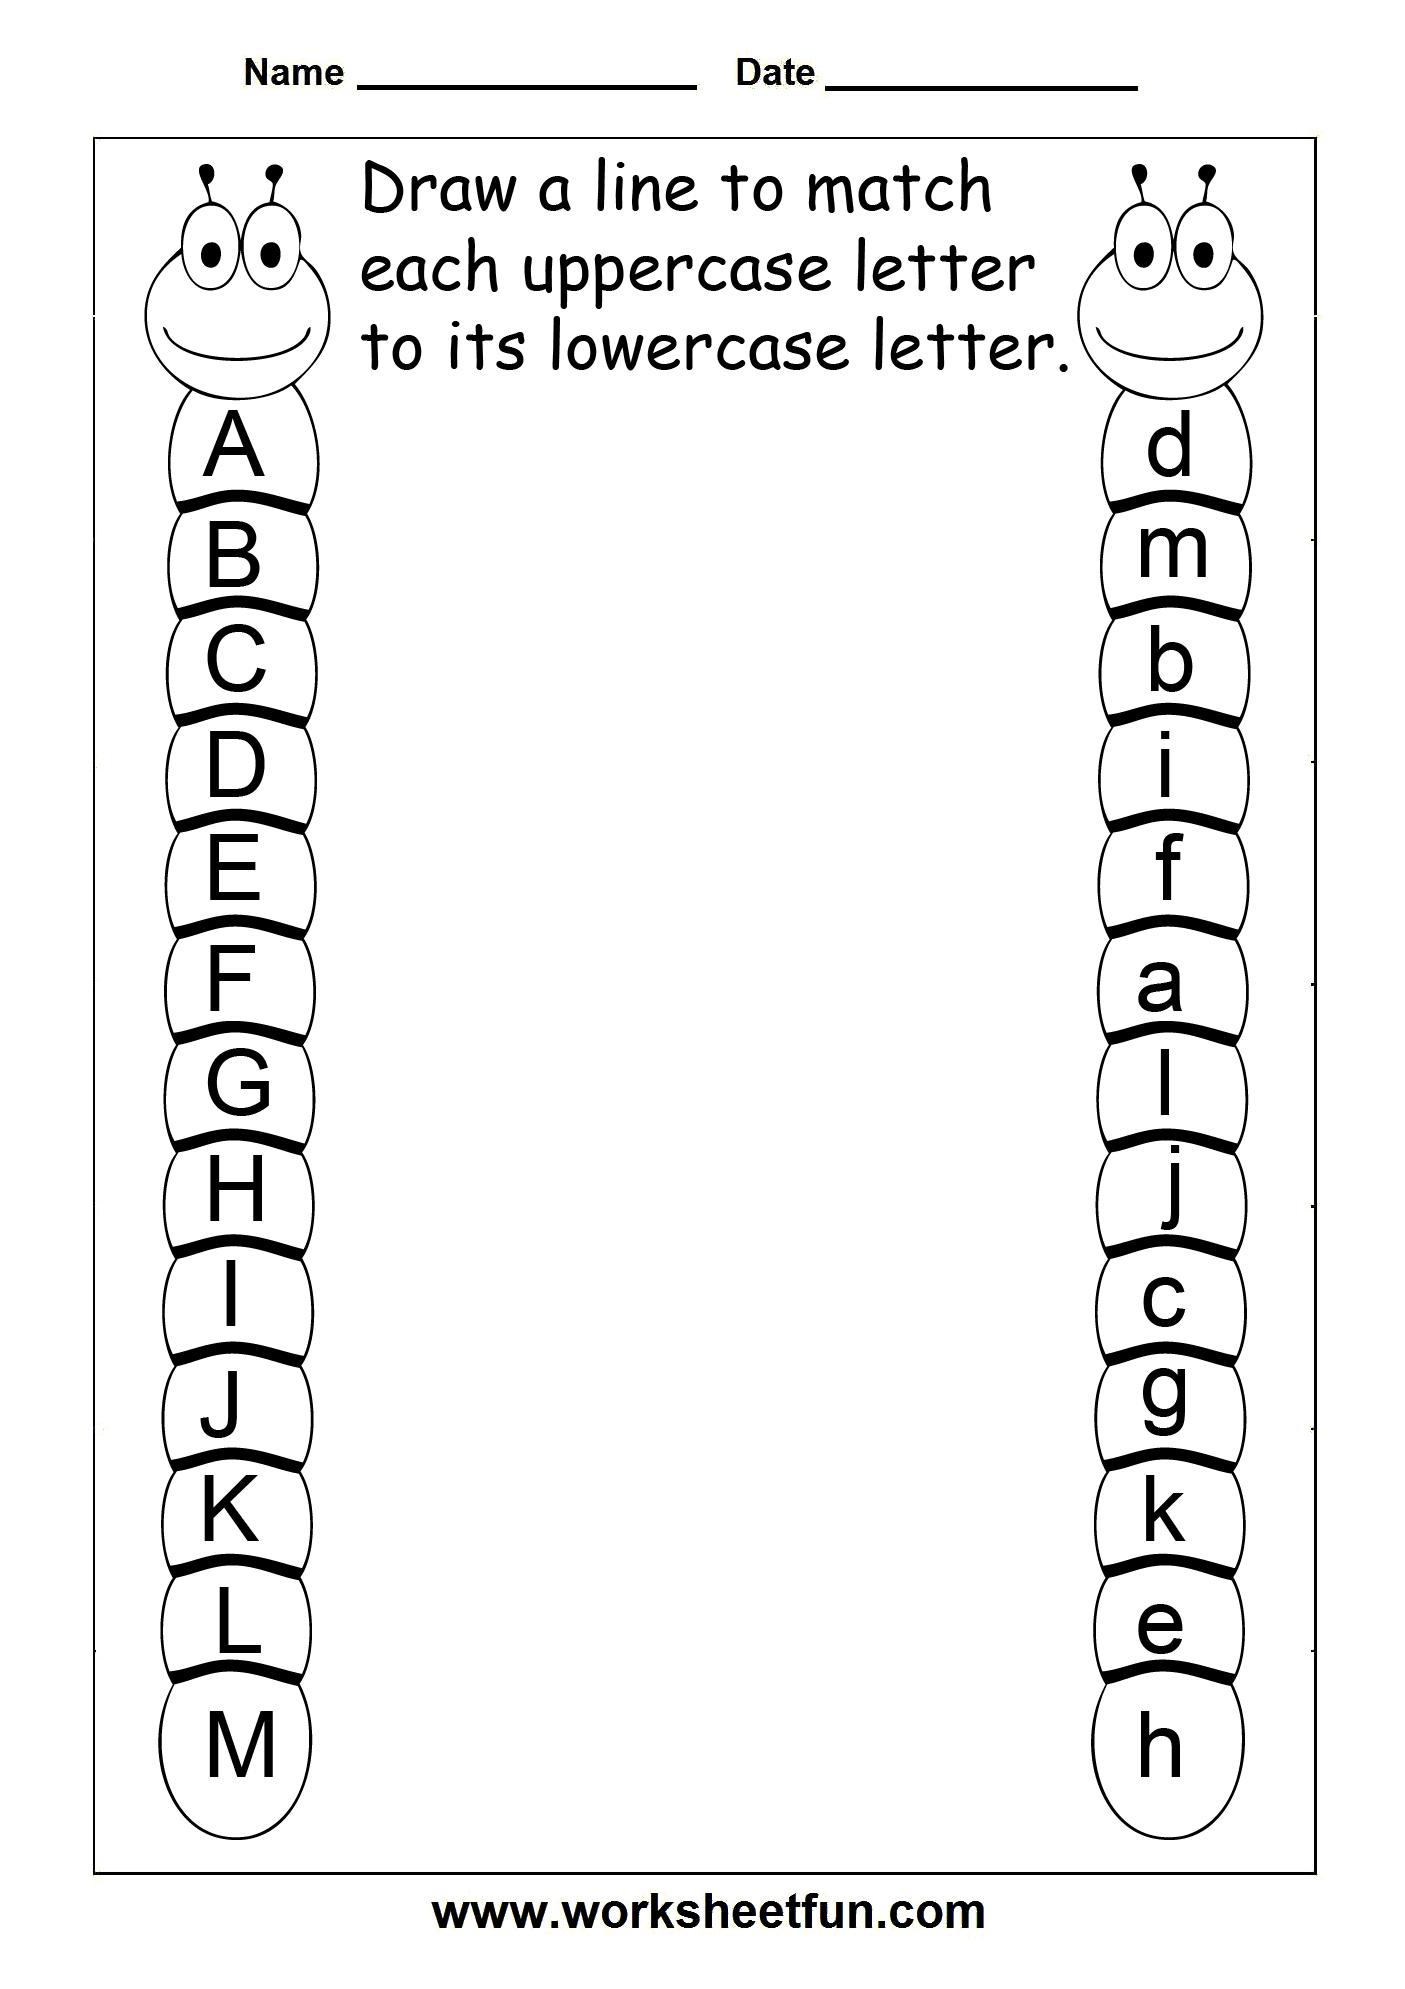 Weirdmailus  Pleasing  Images About Work Worksheet On Pinterest  Hidden Pictures  With Marvelous  Images About Work Worksheet On Pinterest  Hidden Pictures Color By Numbers And Puzzles With Lovely Math Worksheets For Th Grade Also Graduated Cylinder Practice Worksheet In Addition Adjectives Worksheets Th Grade And Common Core Decimal Worksheets As Well As Nwea Math Practice Worksheets Additionally Tally Worksheet From Pinterestcom With Weirdmailus  Marvelous  Images About Work Worksheet On Pinterest  Hidden Pictures  With Lovely  Images About Work Worksheet On Pinterest  Hidden Pictures Color By Numbers And Puzzles And Pleasing Math Worksheets For Th Grade Also Graduated Cylinder Practice Worksheet In Addition Adjectives Worksheets Th Grade From Pinterestcom